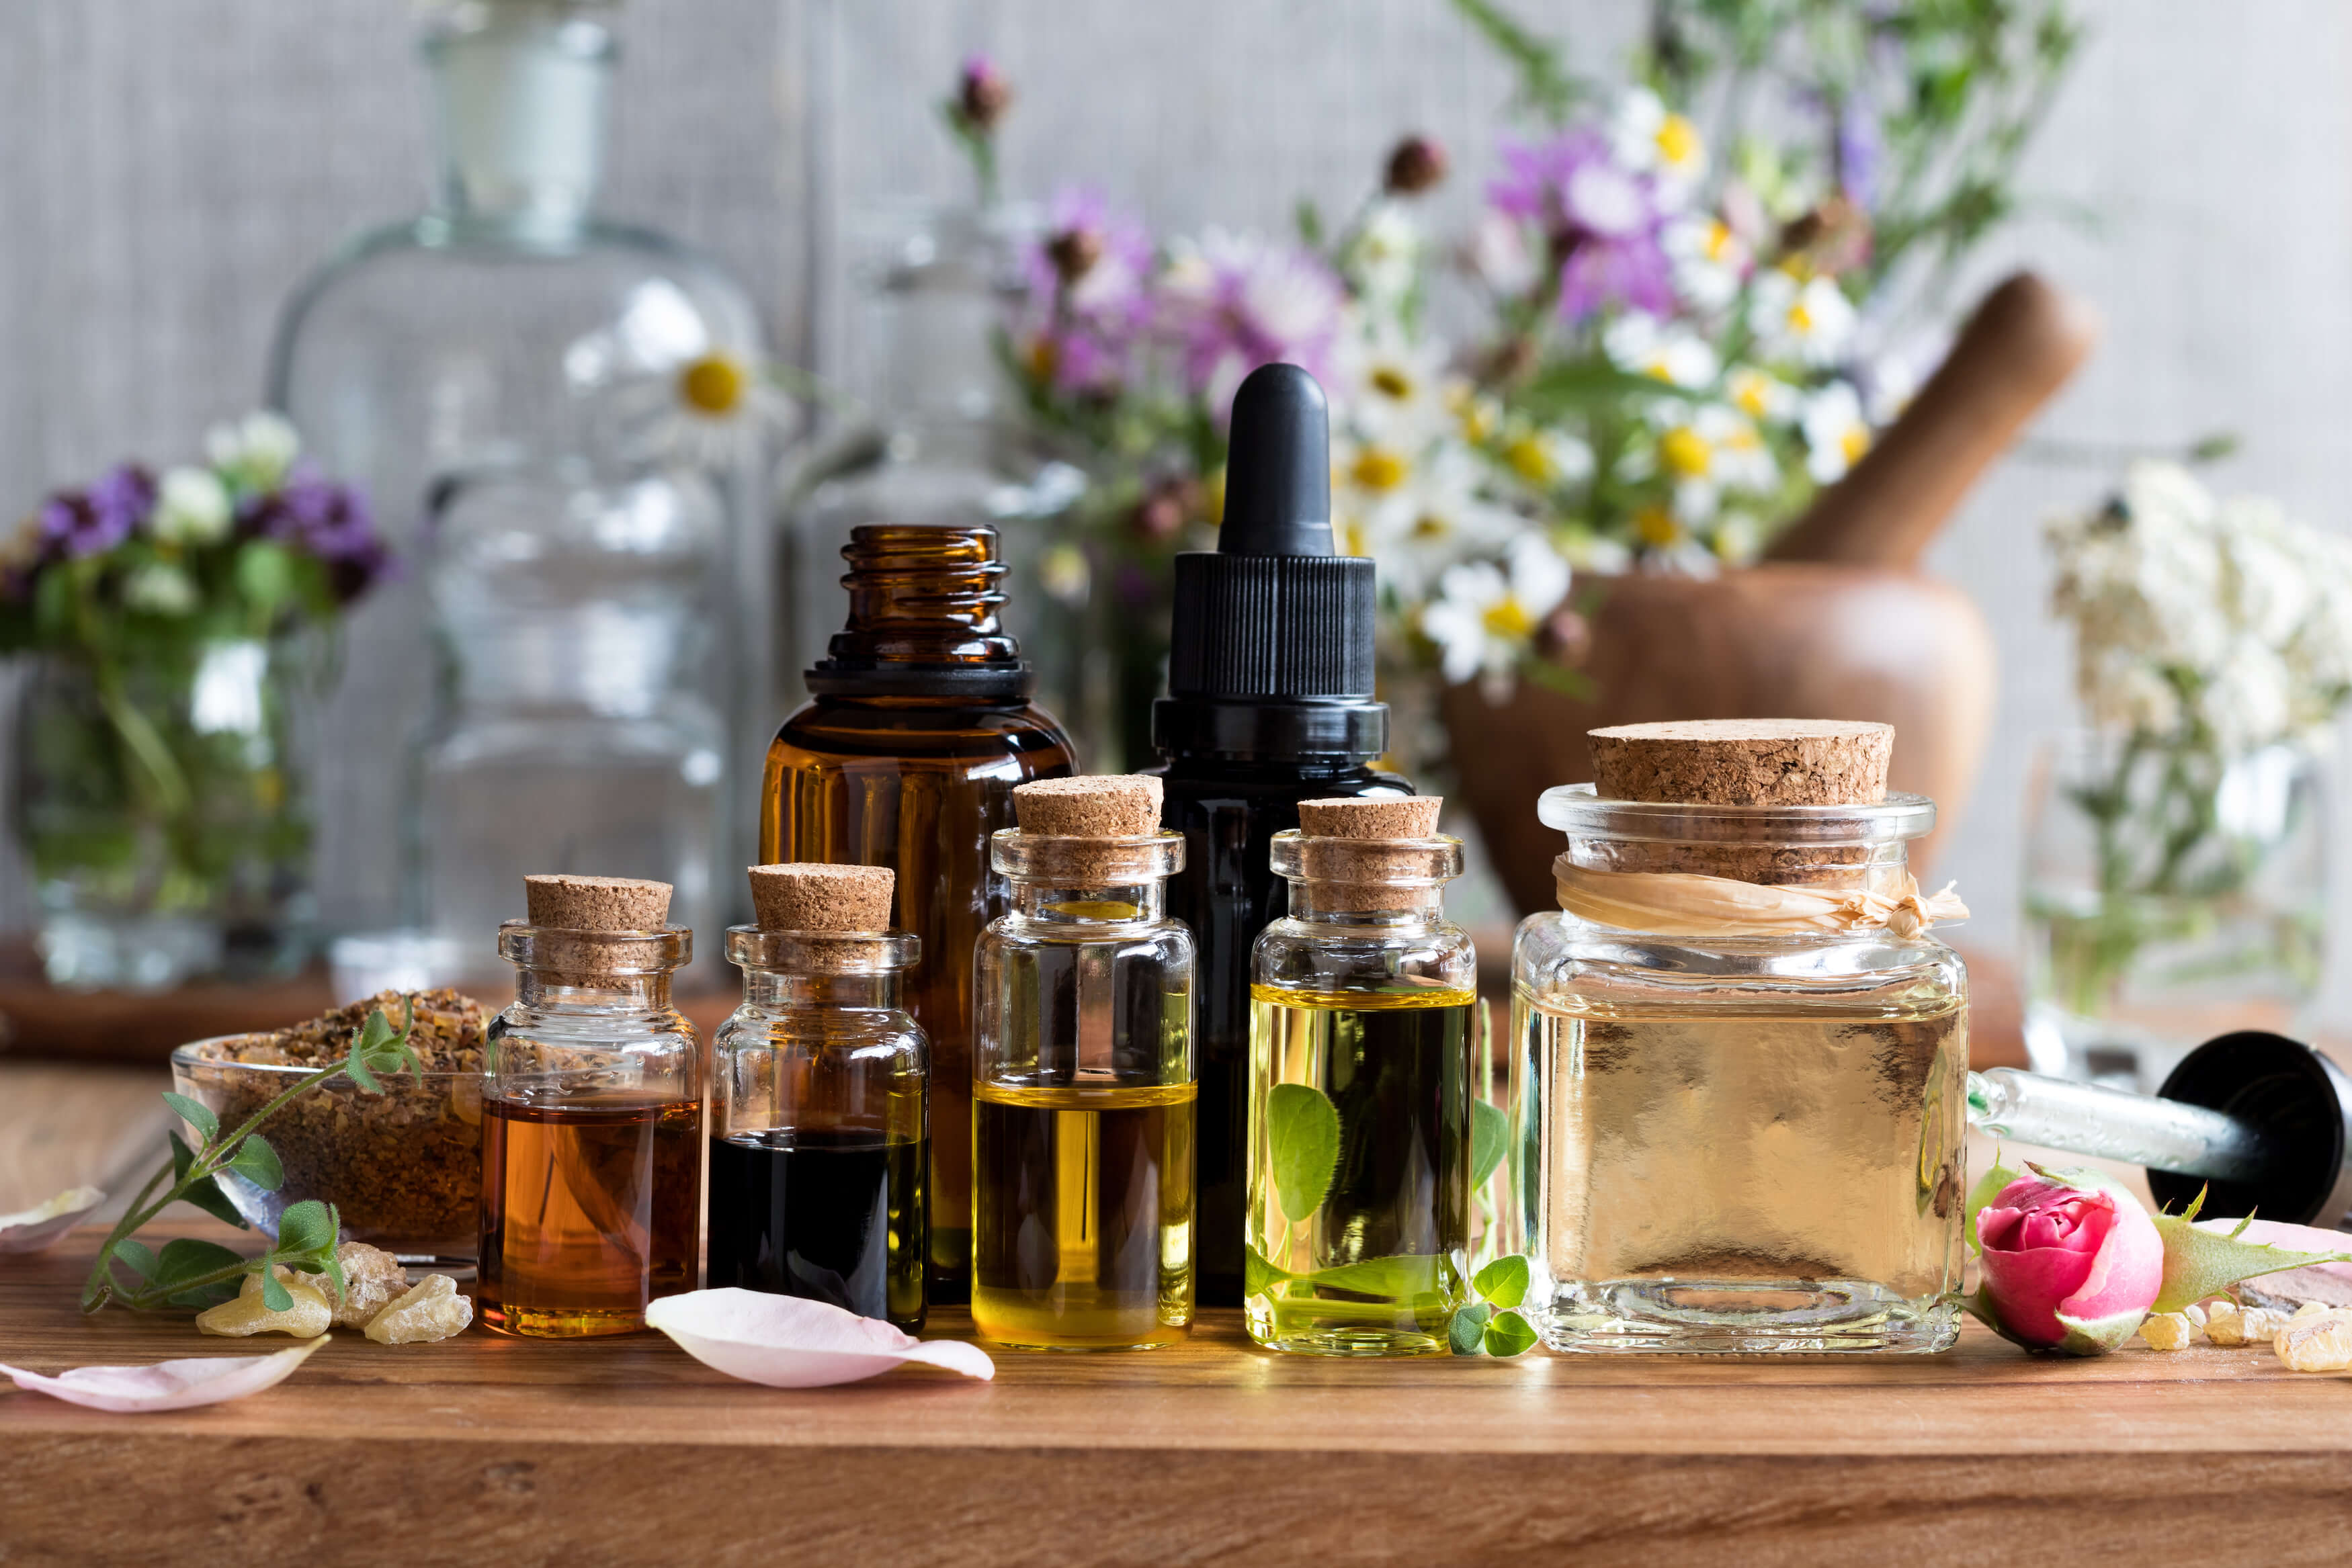 Essential Oils  - Essential oils are a powerful and versatile part of a natural medicine cabinet, as they  contain potent medicinal and cosmetic properties. They work to support the body's own healing system. Essential oils have a very small molecular size, which means that their healing properties are easily absorbed by the skin. Each oil has unique properties supporting a well balanced body.